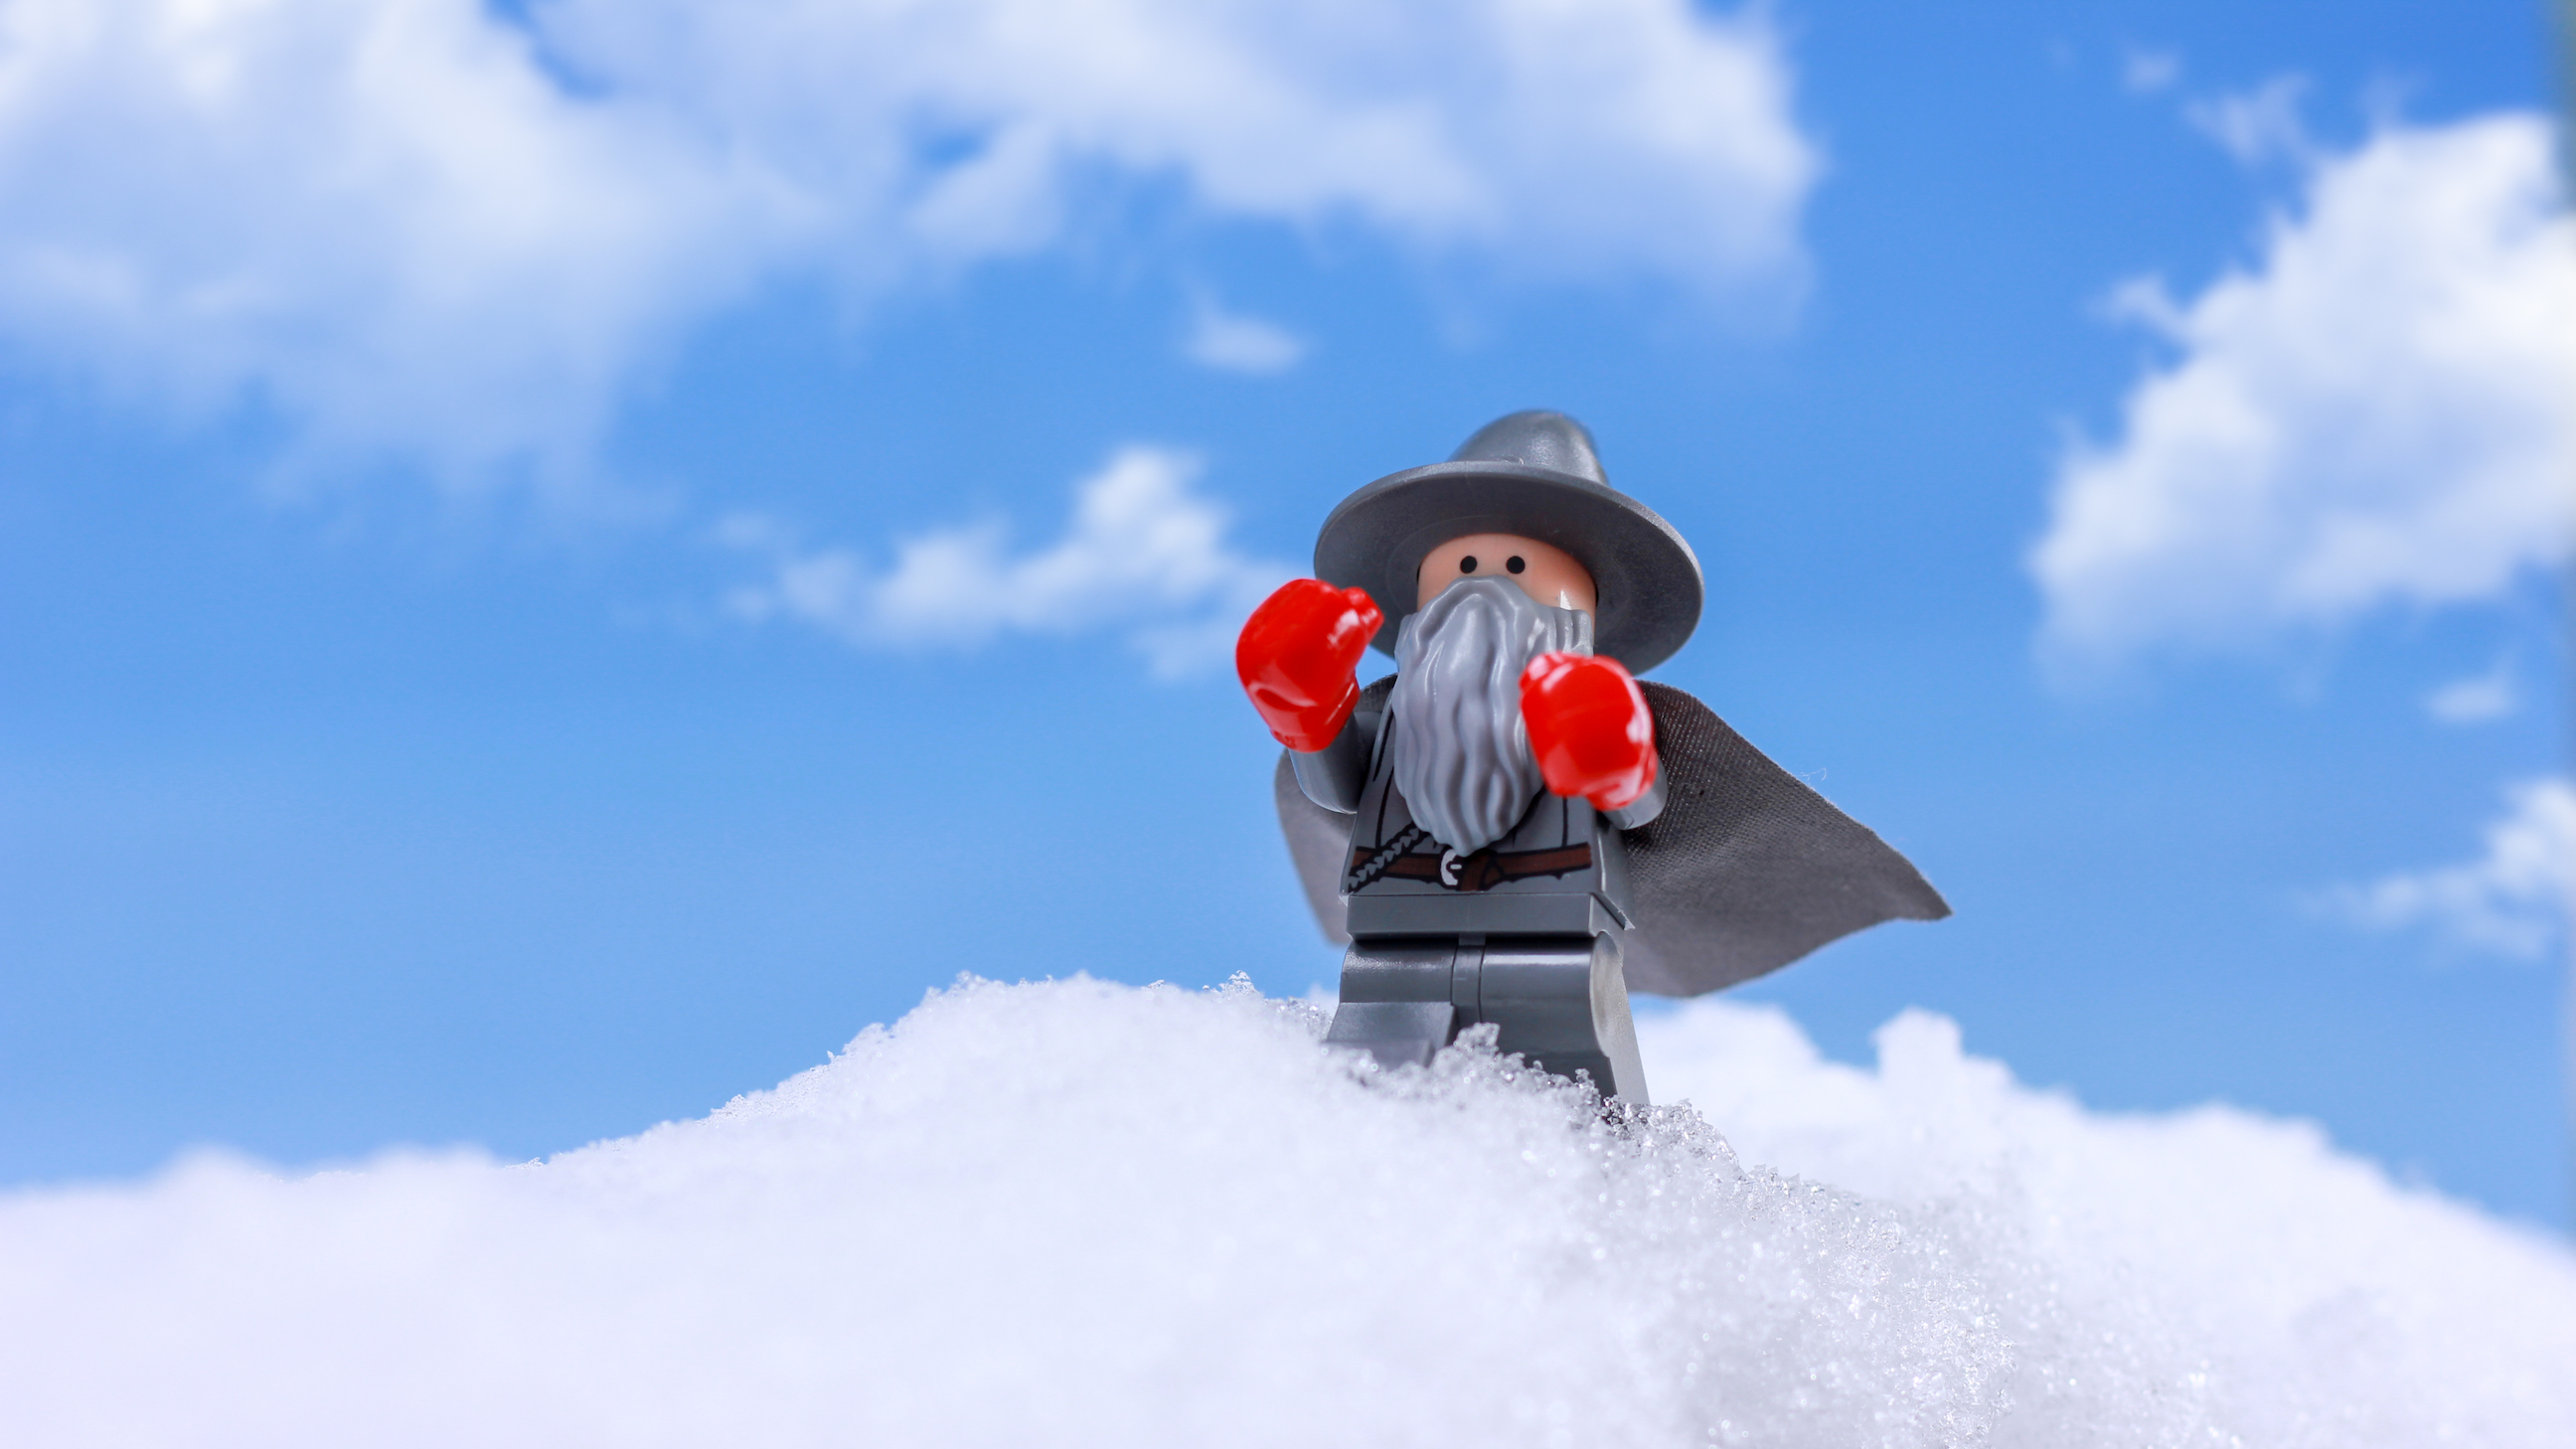 lego gandalf lord of the rings boxing gloves snow by james garcia